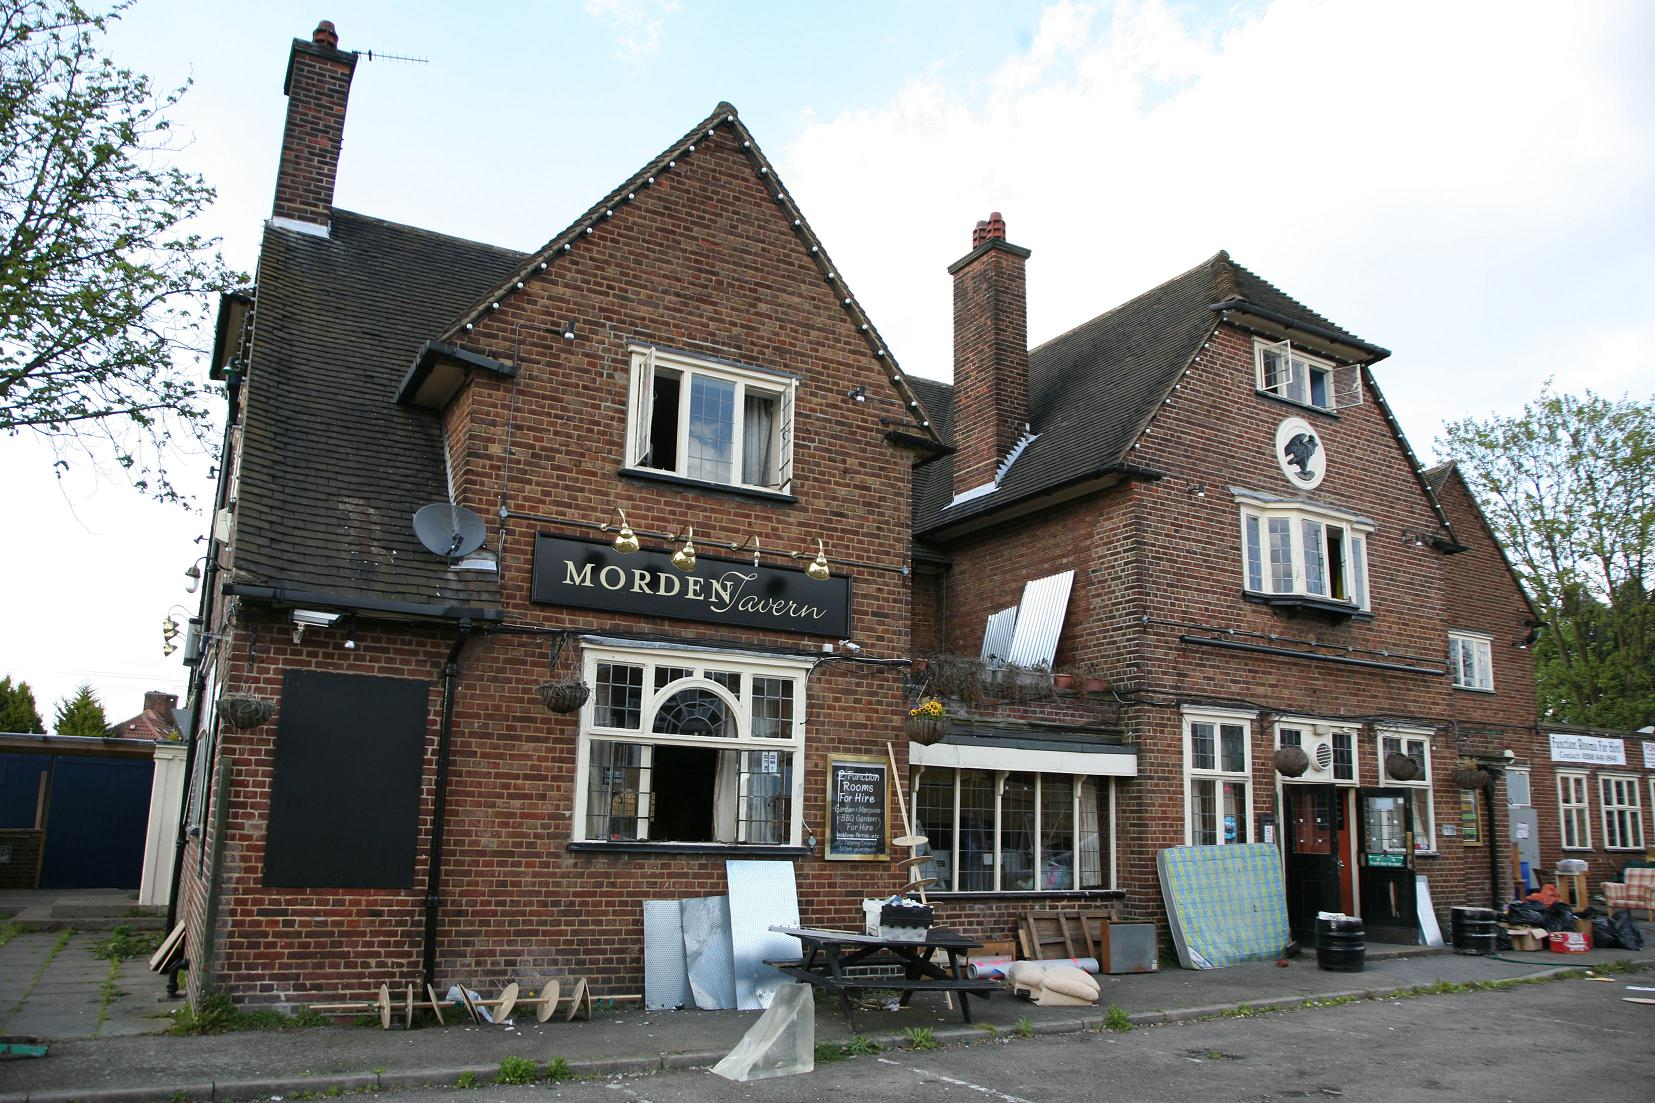 The Morden Tavern was closed two years ago by Reef Estates, who have won permission to redevelo